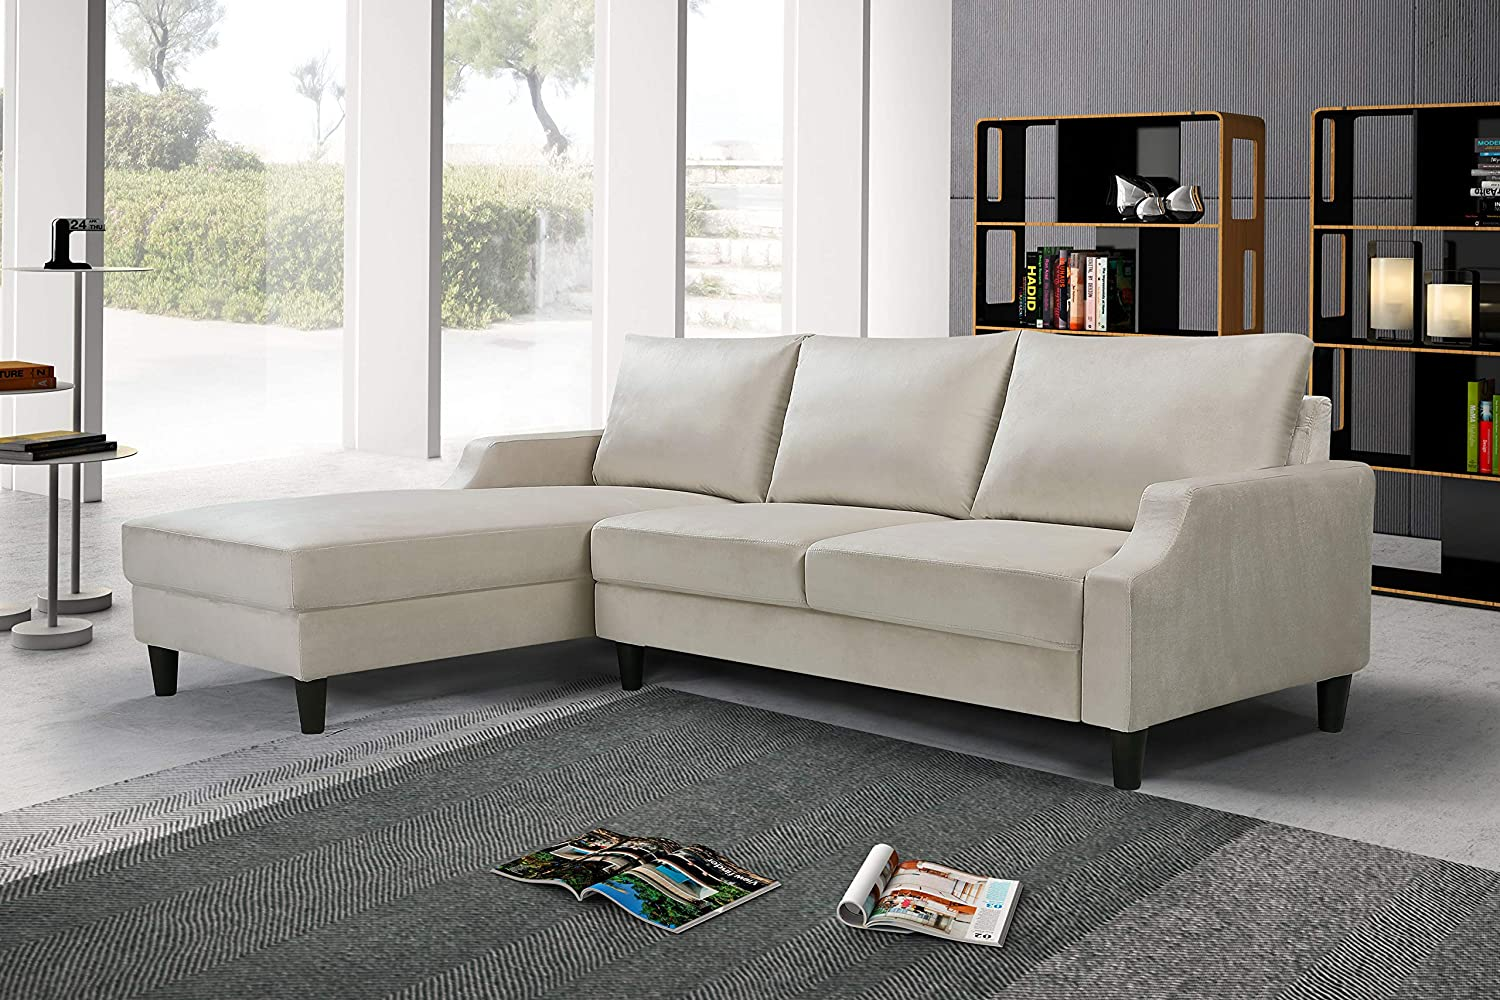 US Pride Furniture S0161-L Iduna Laucas Modern Large Velvet Sectional, L-Shape Sofa with Wide Chaise Lounge, Ivory